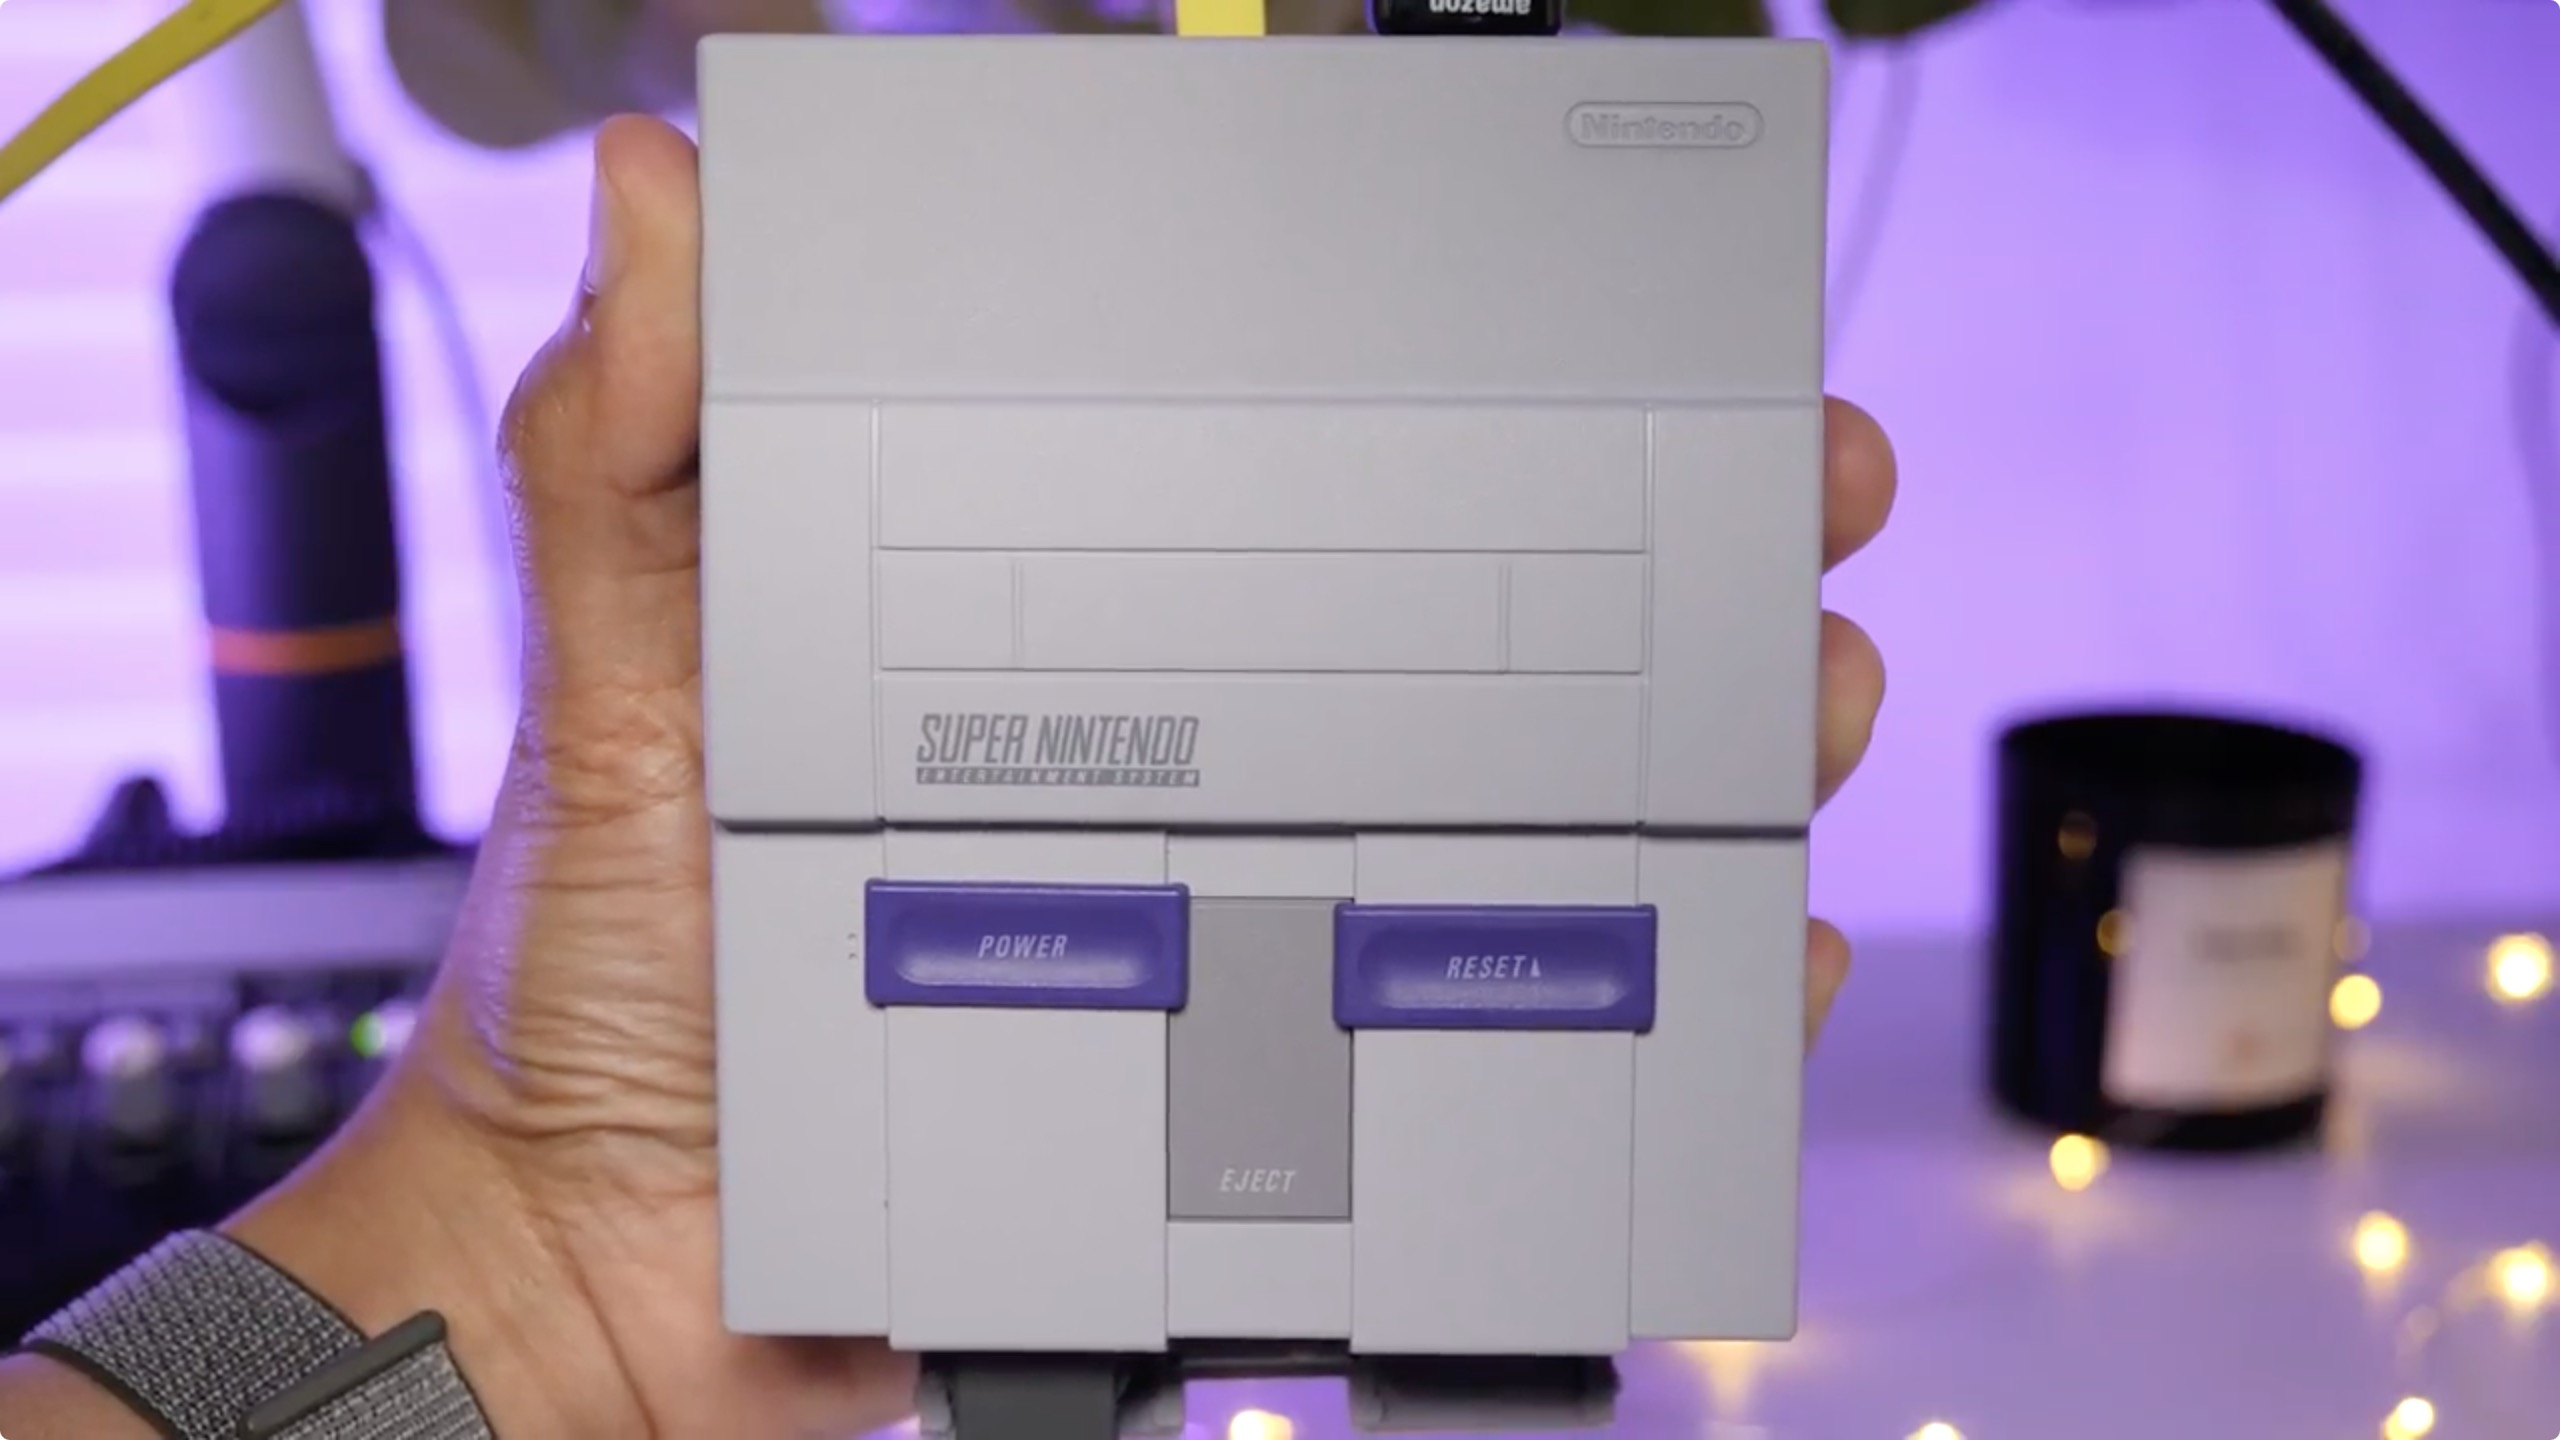 Save $10 on the rarely discounted NES and SNES Classic Consoles at Walmart